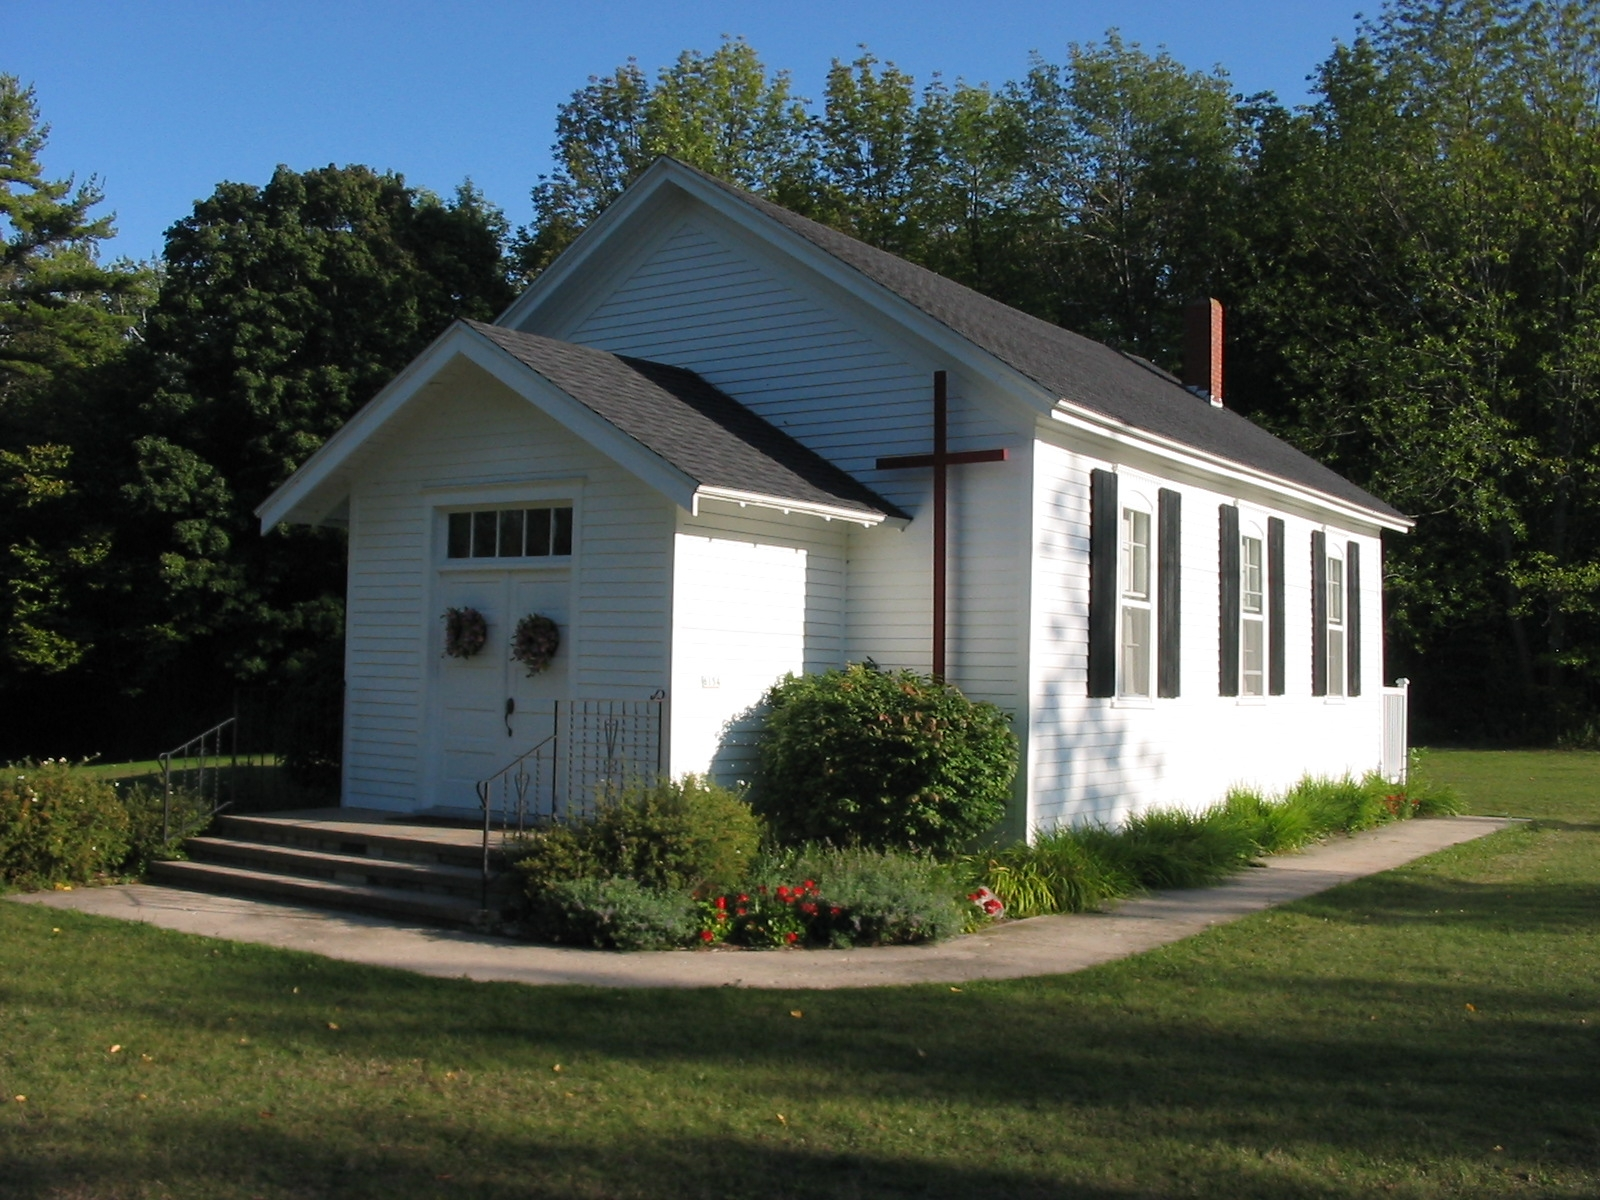 Jacksonport United Methodist Church